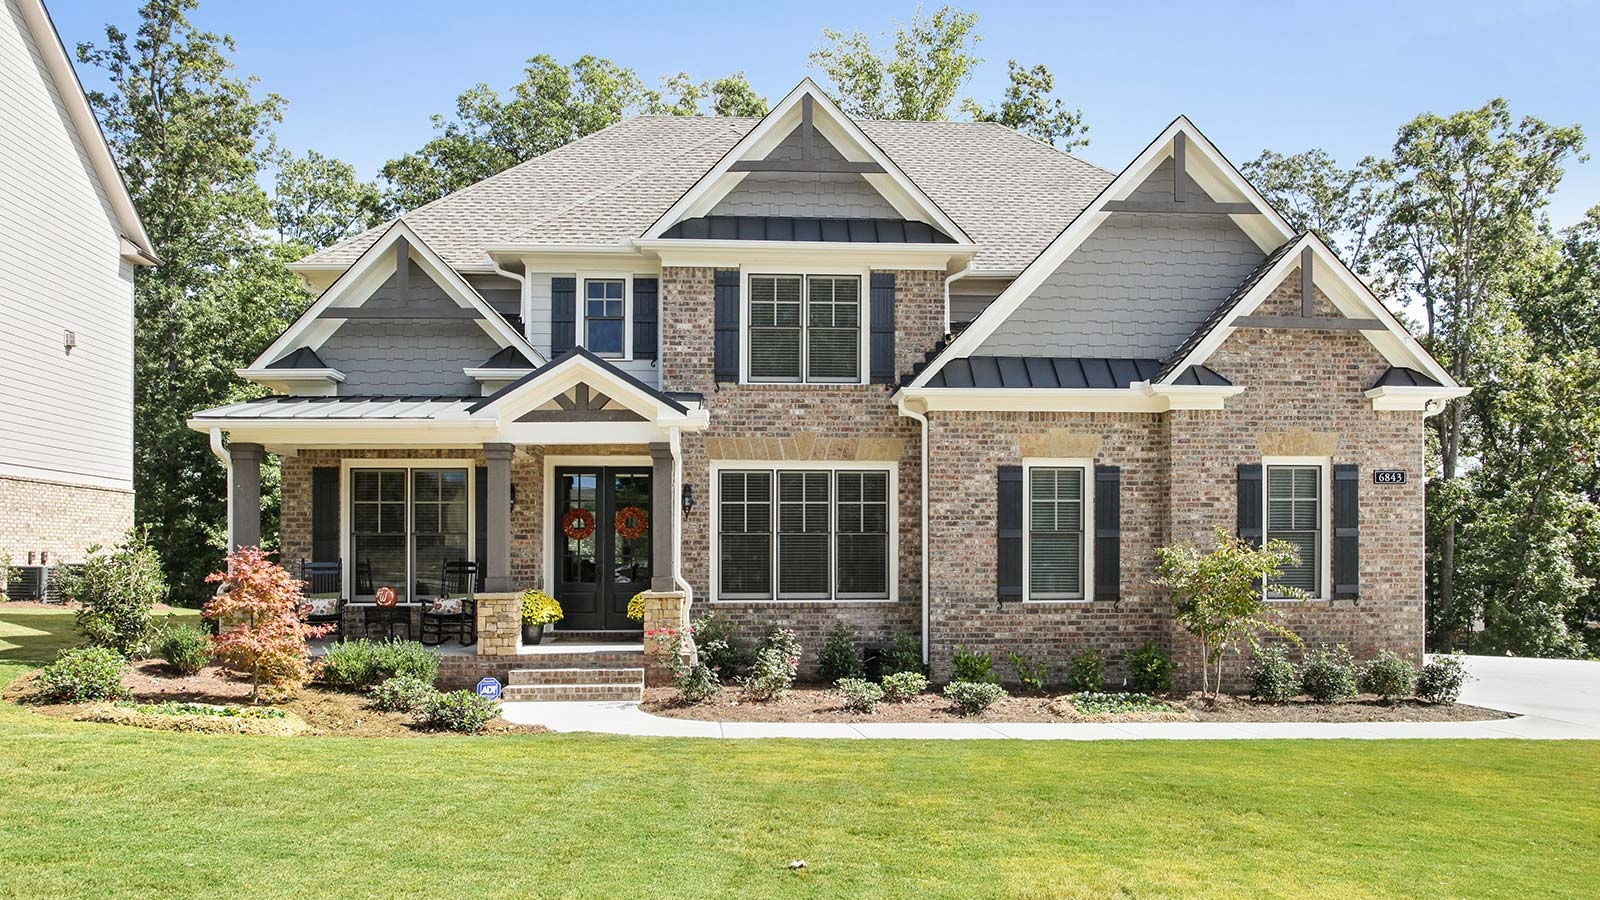 A beautiful home built by Harcrest Homes.